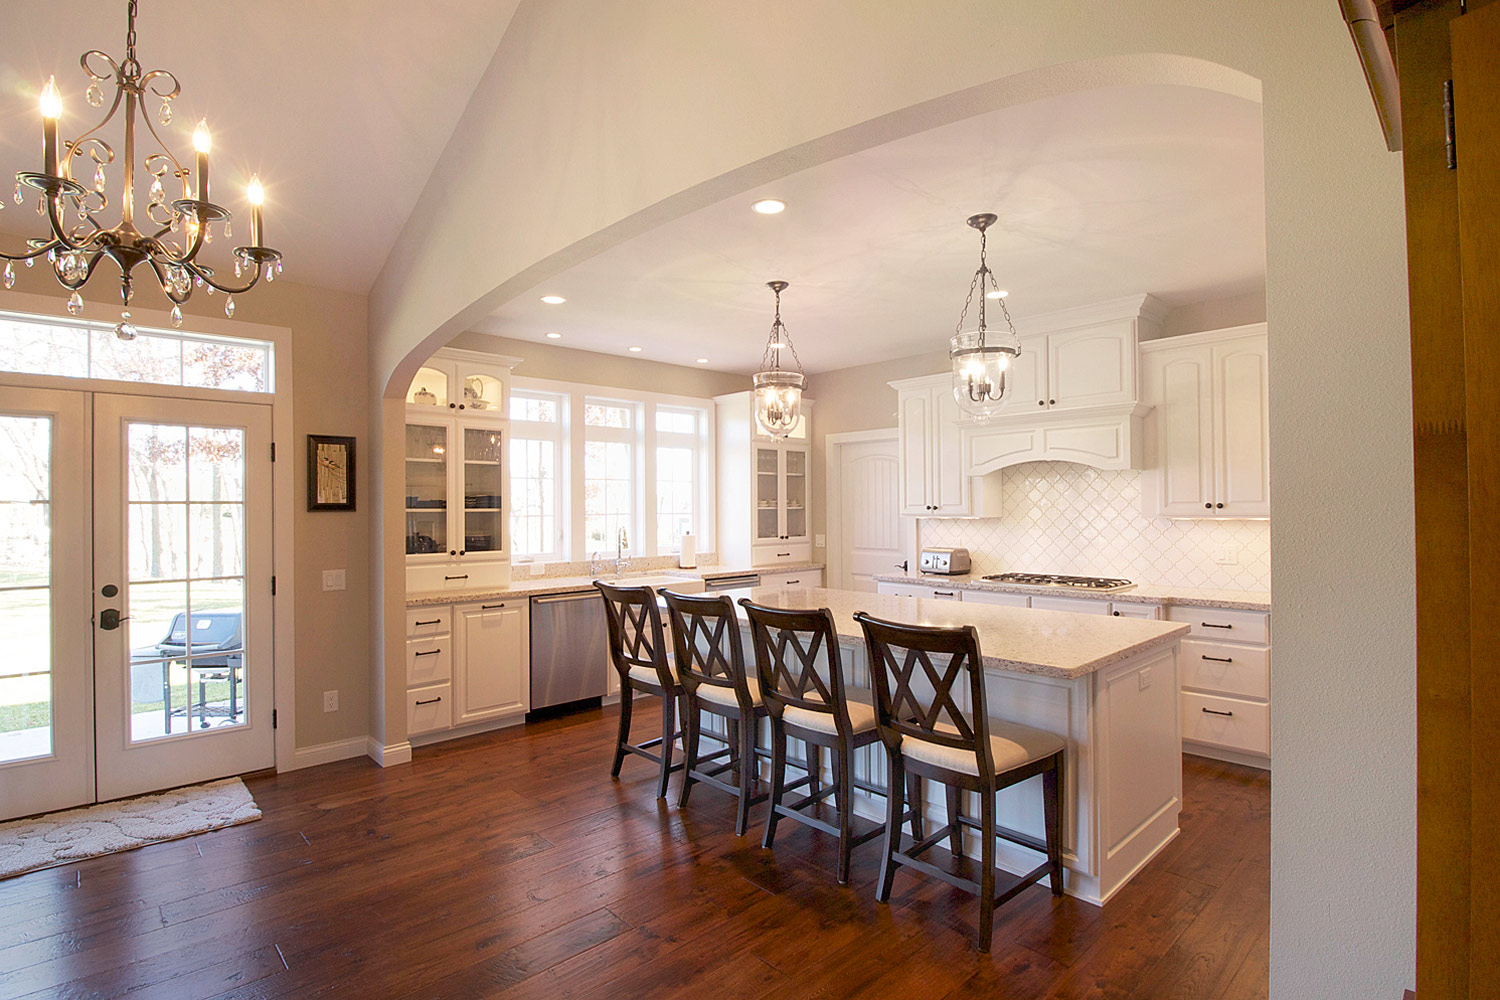 French Country Kitchen Island With Seating